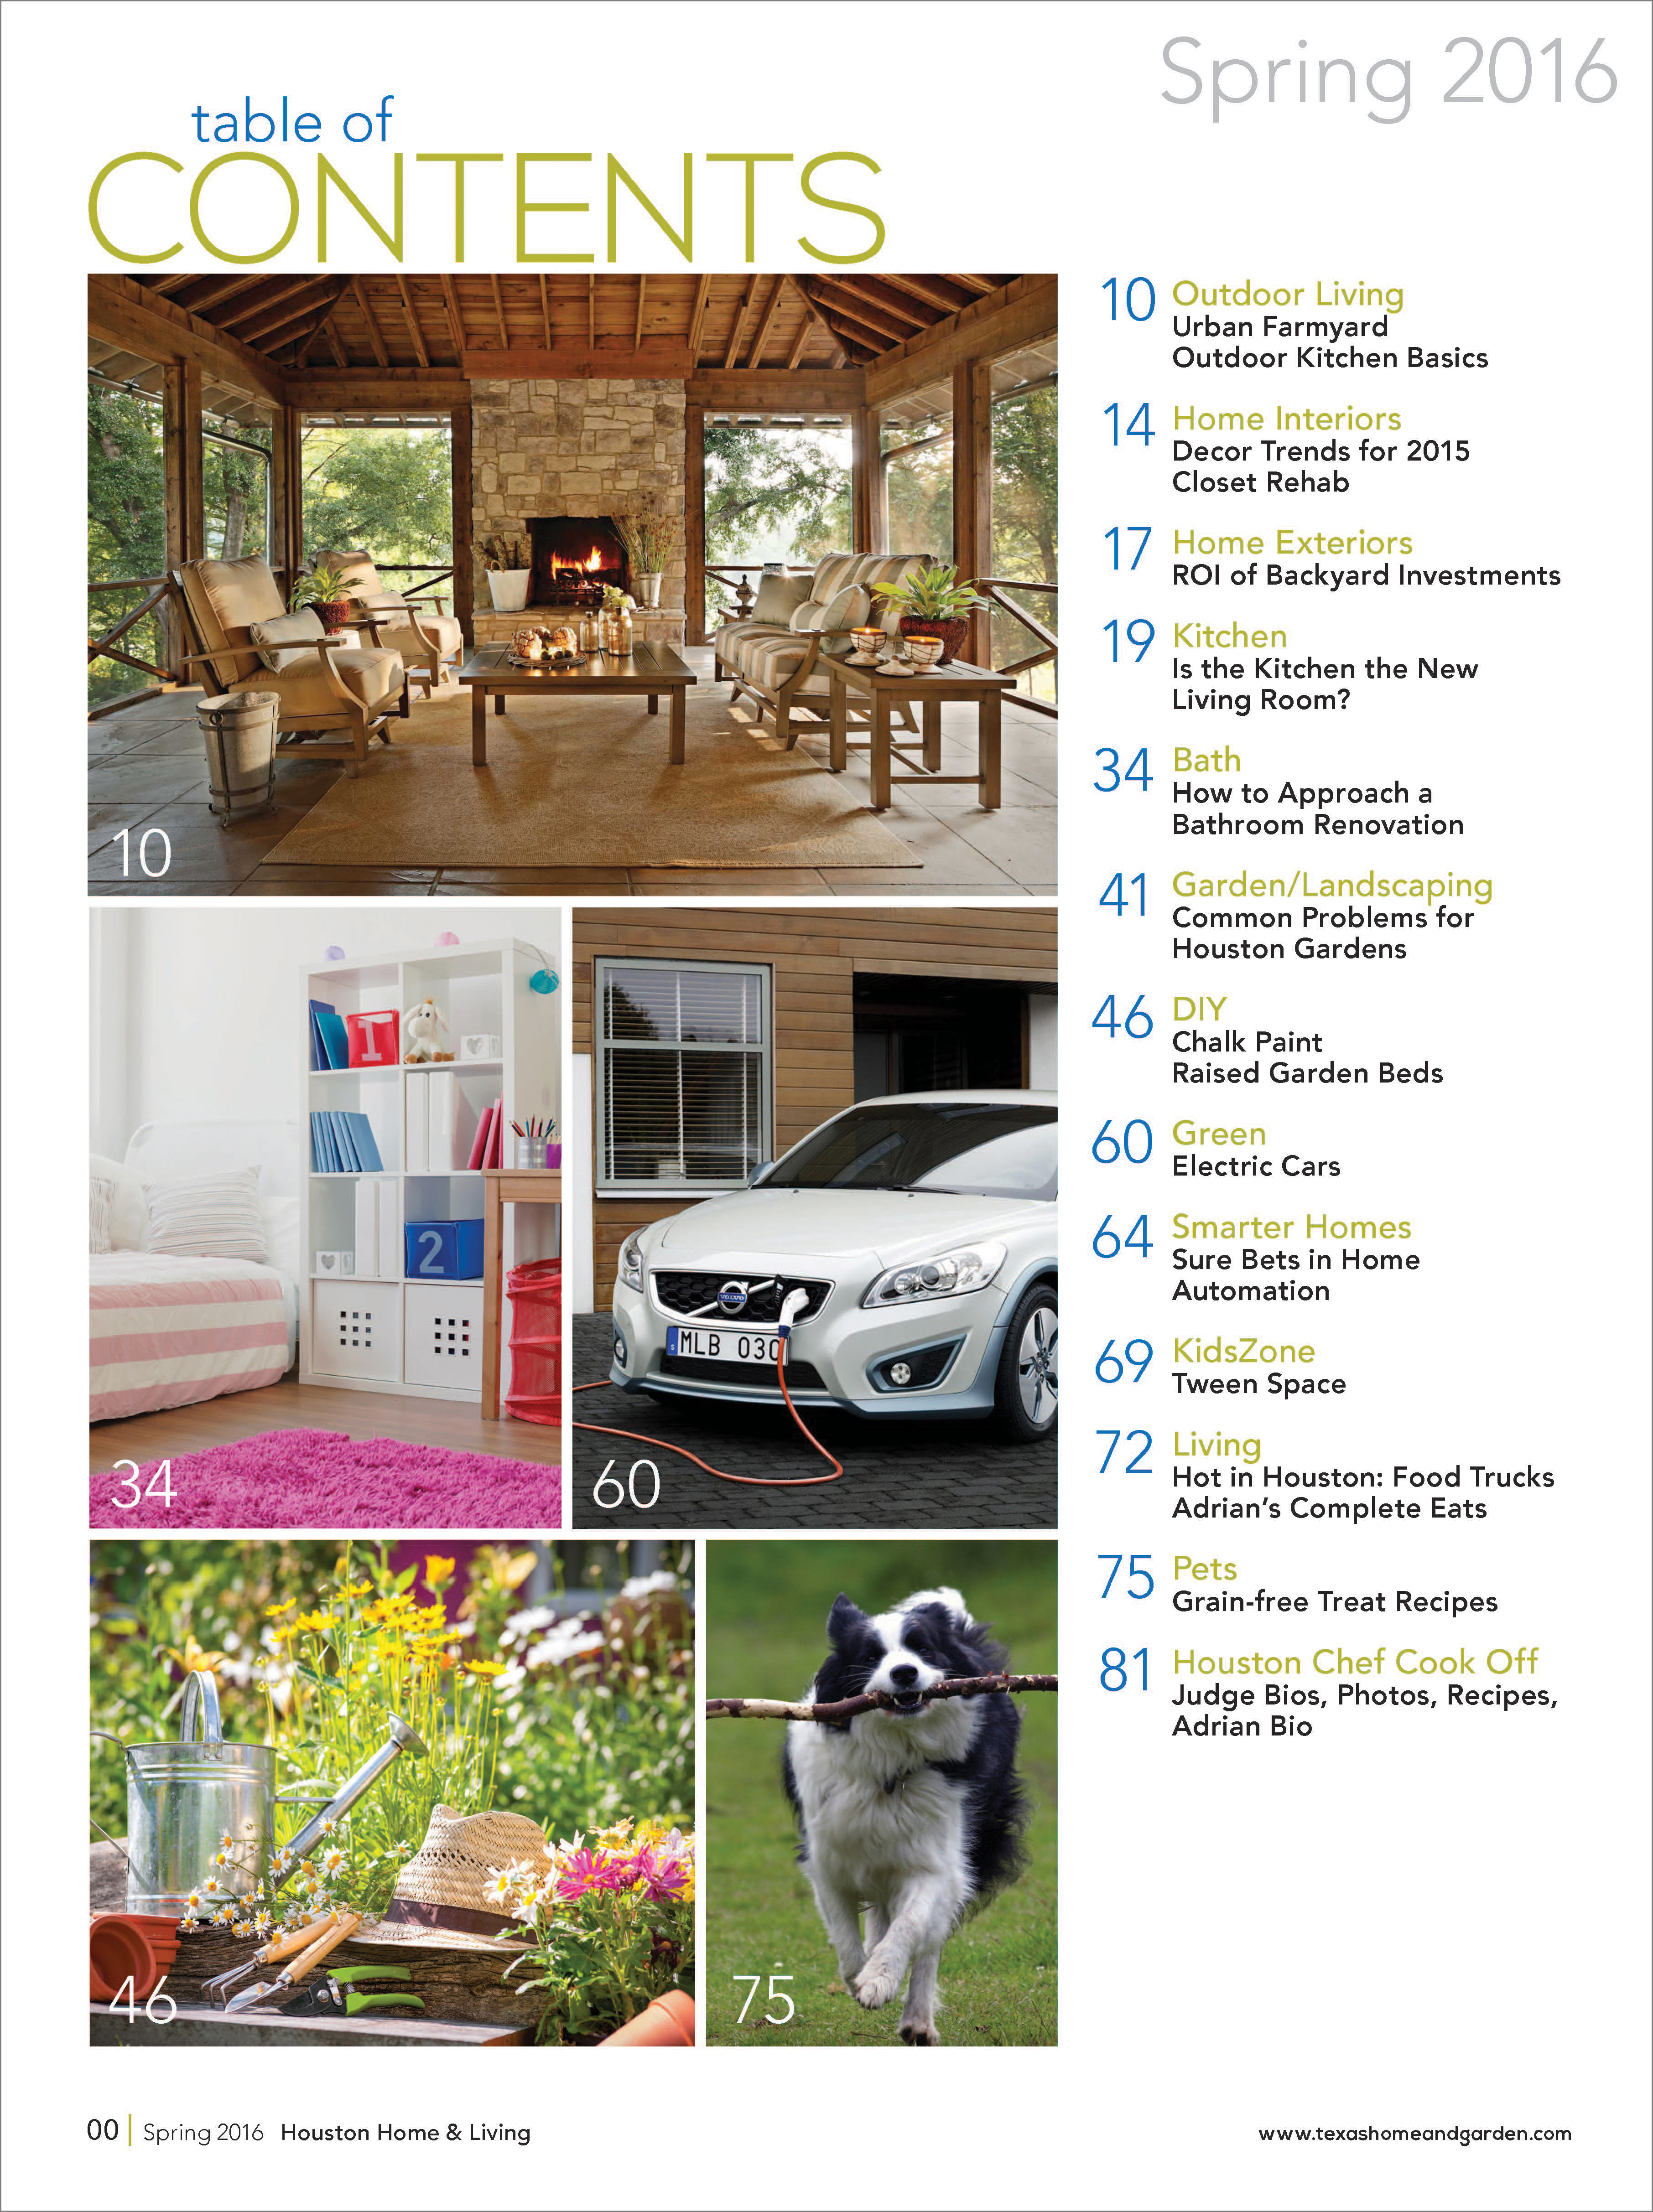 Design Concepts For Startup Houston Home And Garden Magazine.